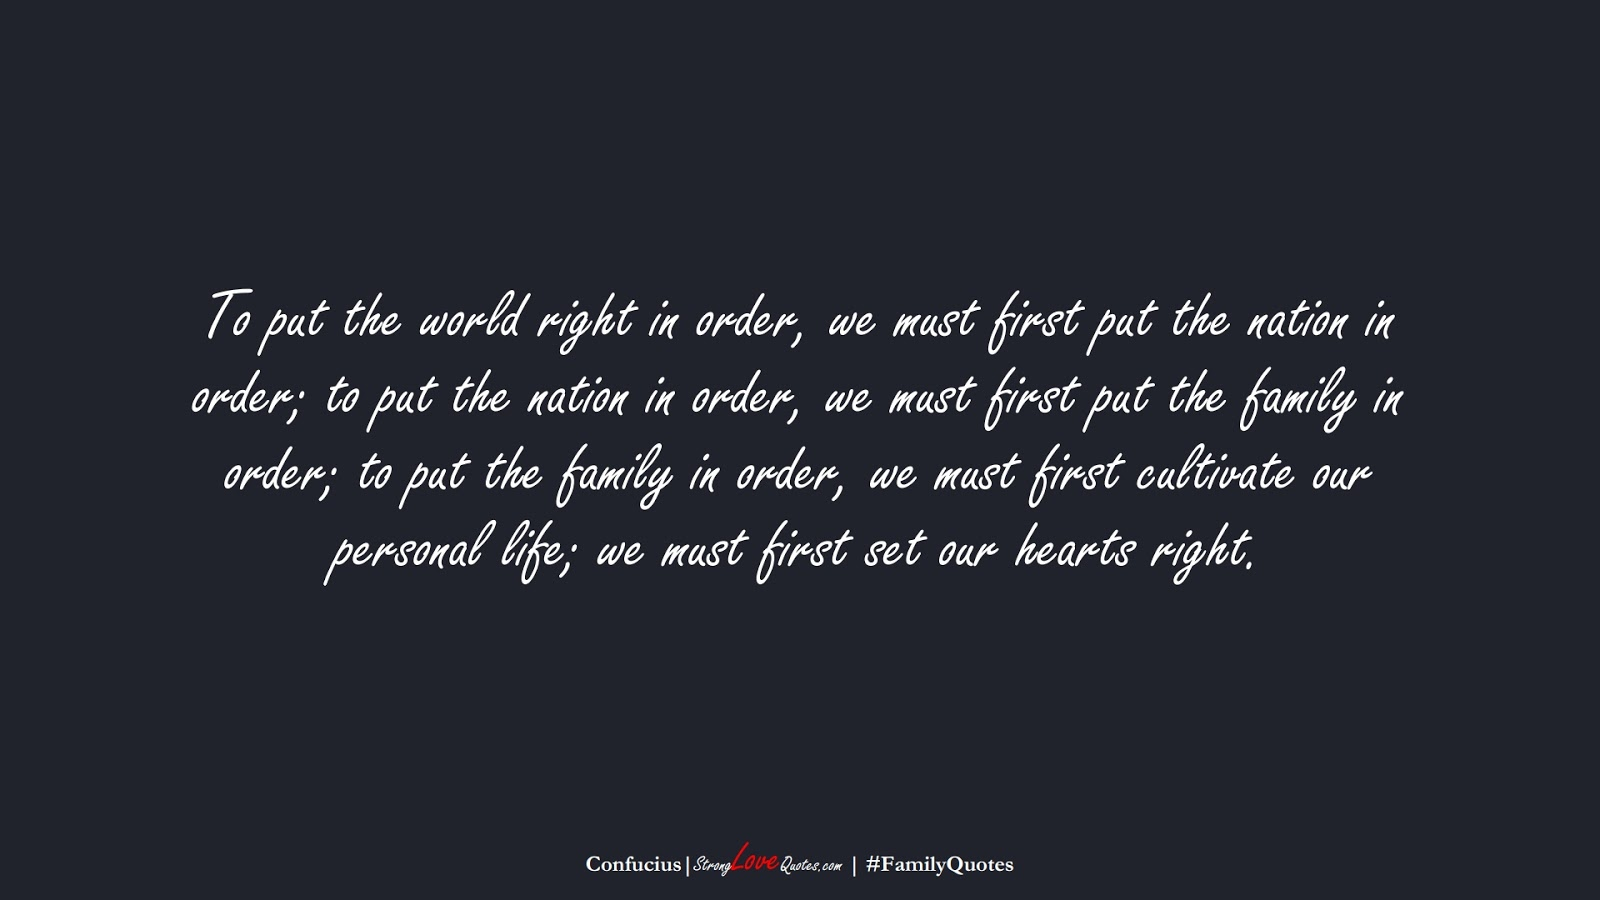 To put the world right in order, we must first put the nation in order; to put the nation in order, we must first put the family in order; to put the family in order, we must first cultivate our personal life; we must first set our hearts right. (Confucius);  #FamilyQuotes